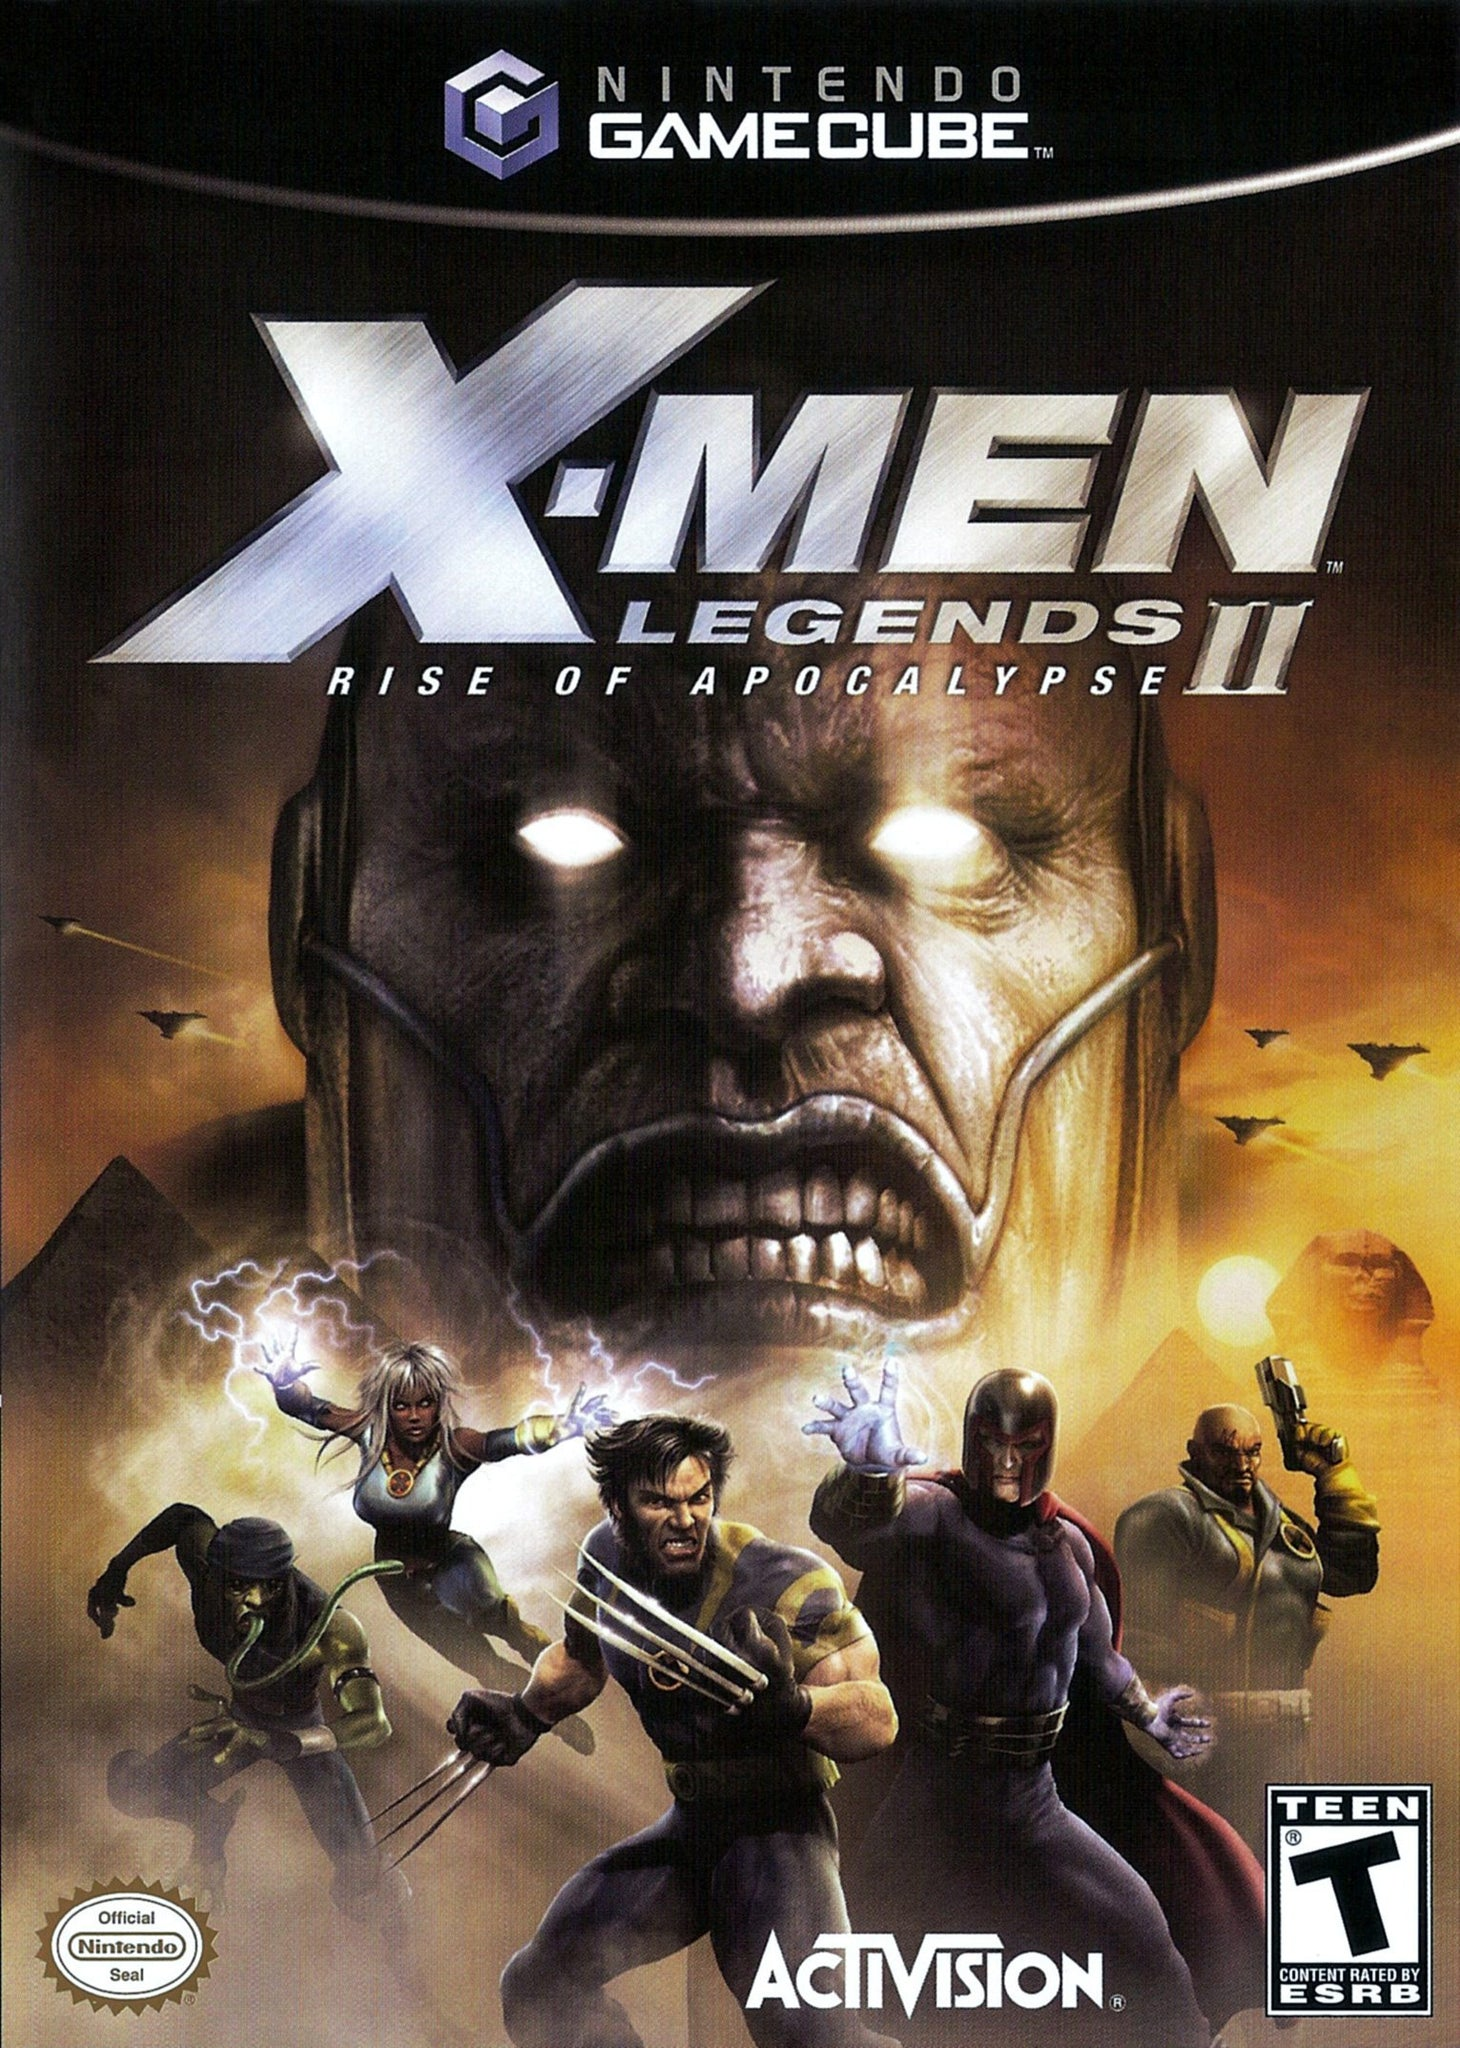 X-Men Legends II: Rise of Apocalypse - Gamecube (Pre-owned)